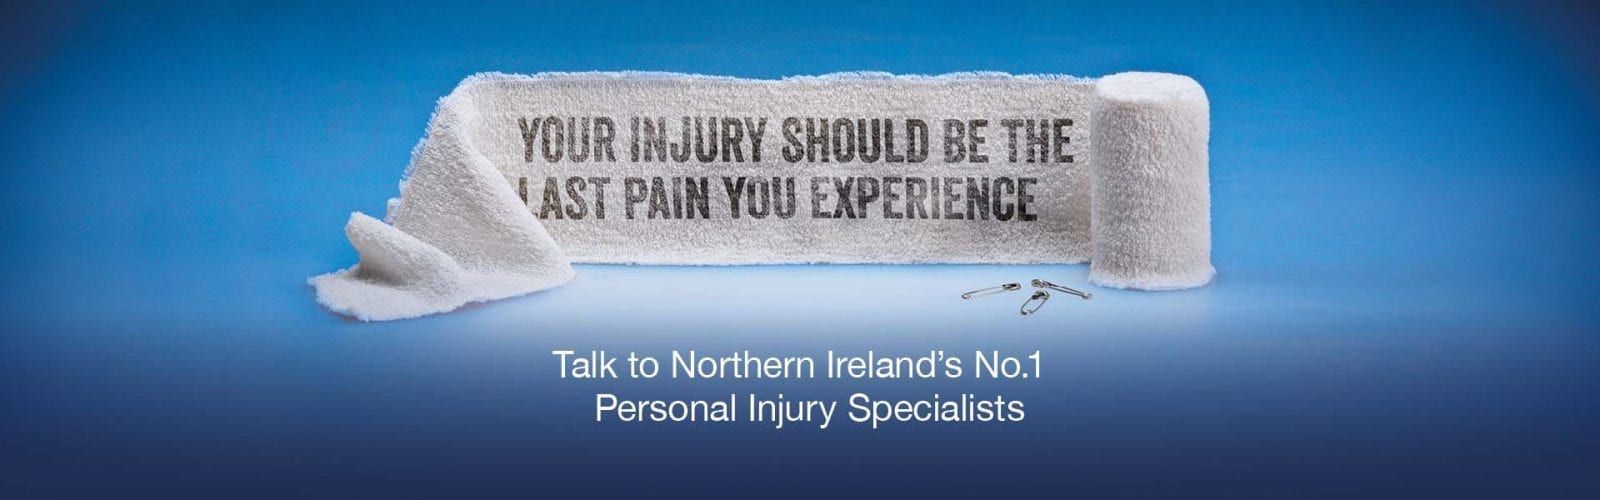 JMK Solicitors Northern Ireland's Number 1 Personal Injury Specialists